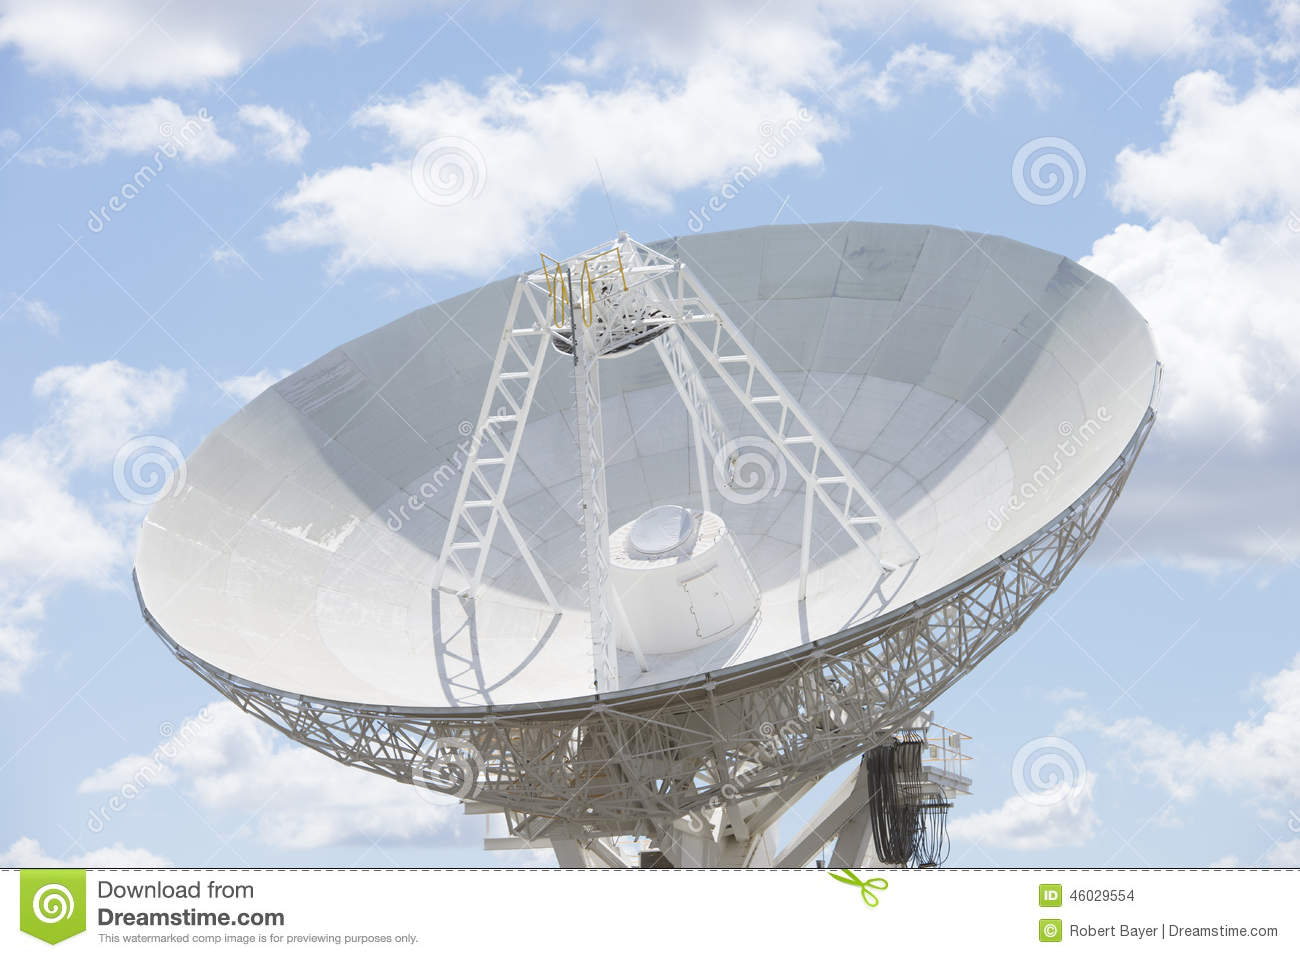 Telescope dish for astronomical science